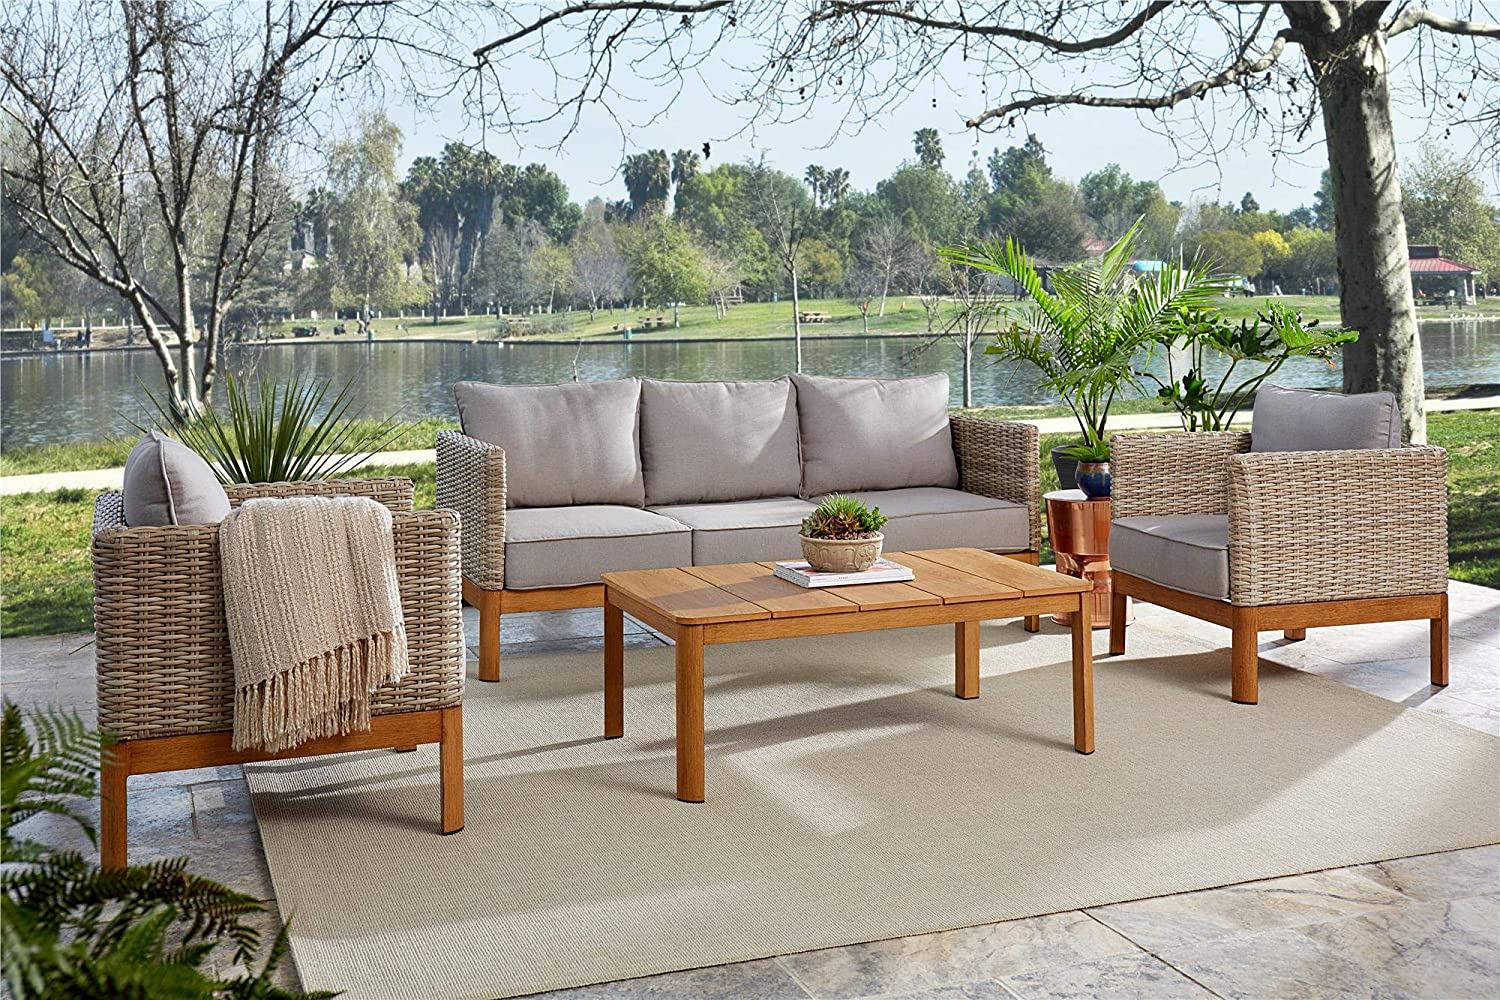 Outdoor Couch And Coffee Table